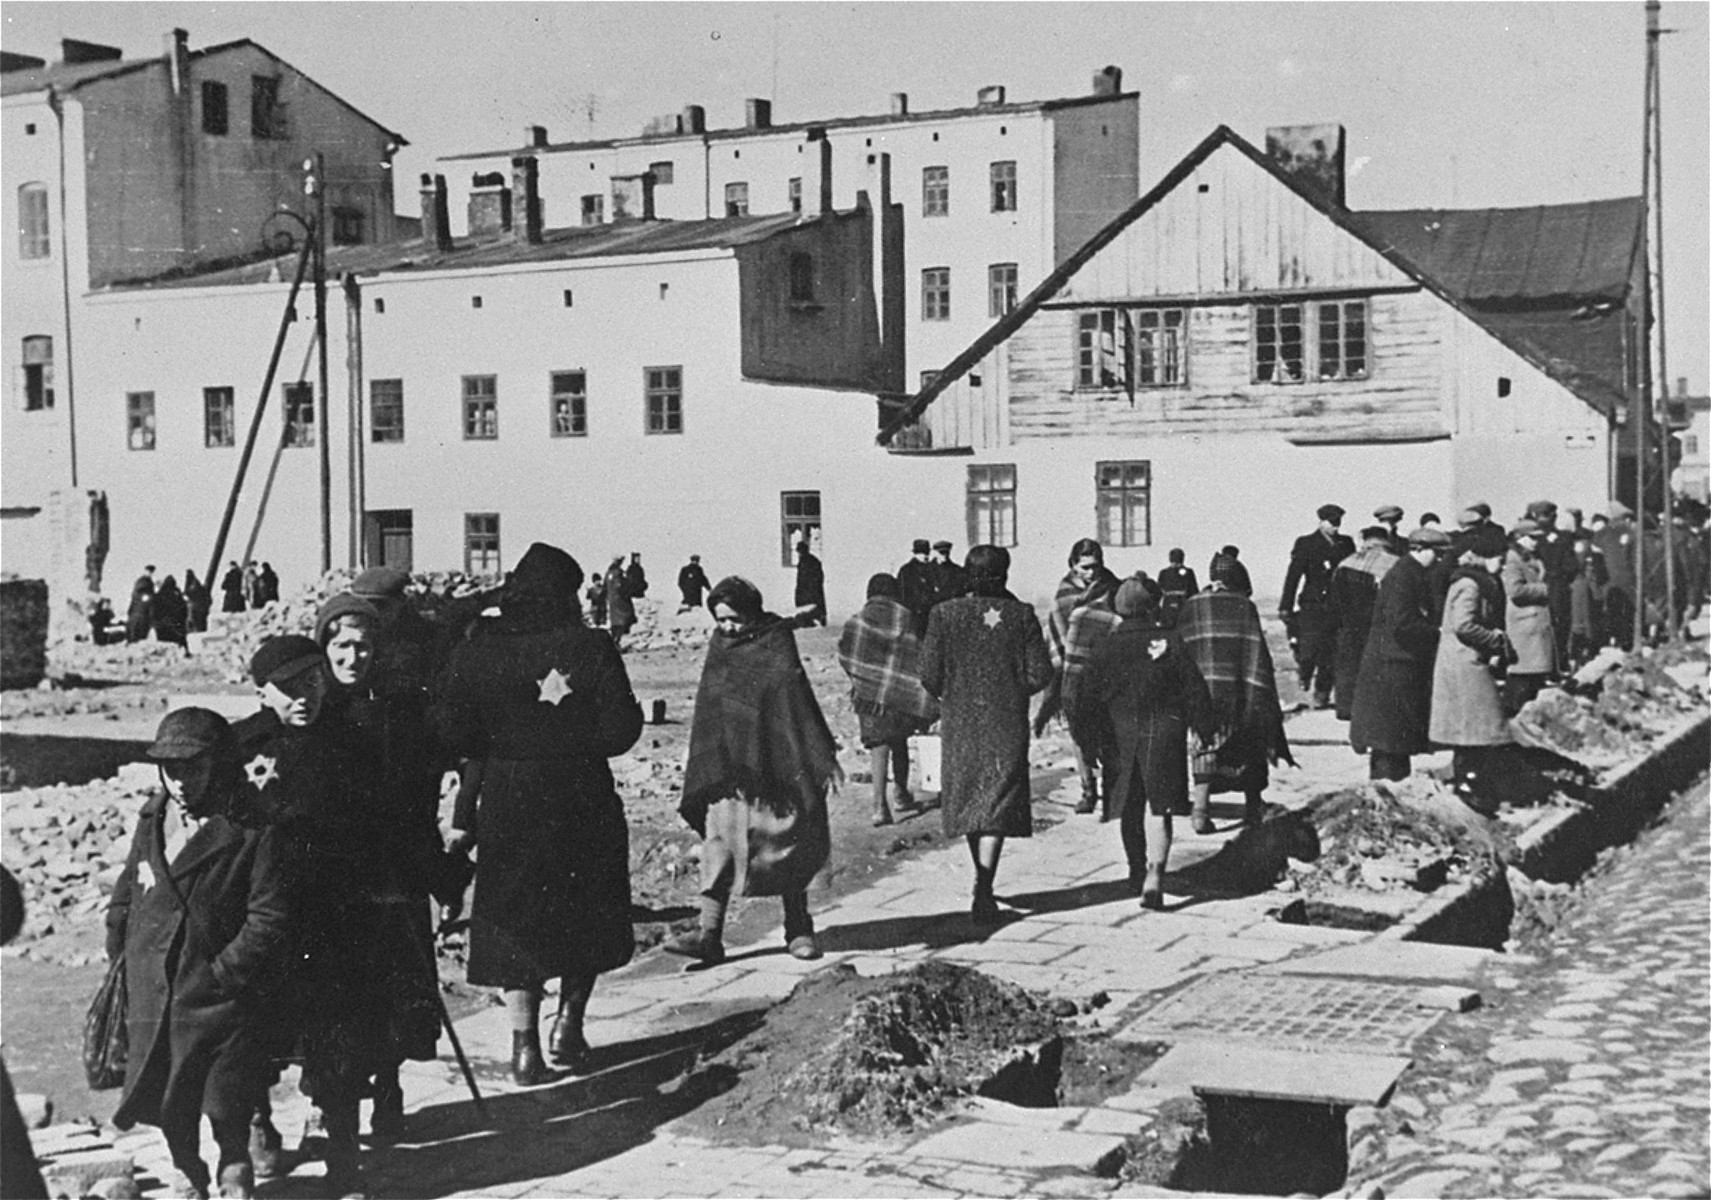 Lodz Jews walk through a courtyard filled with debris a short time before the sealing of the ghetto.  Jews in Lodz were ordered to move into the ghetto on February 8, 1940, and the ghetto was sealed on April 30, 1940. The ghetto was established in the poorest and most neglected part of town - Baluty and The Old Town (Stare Miasto).